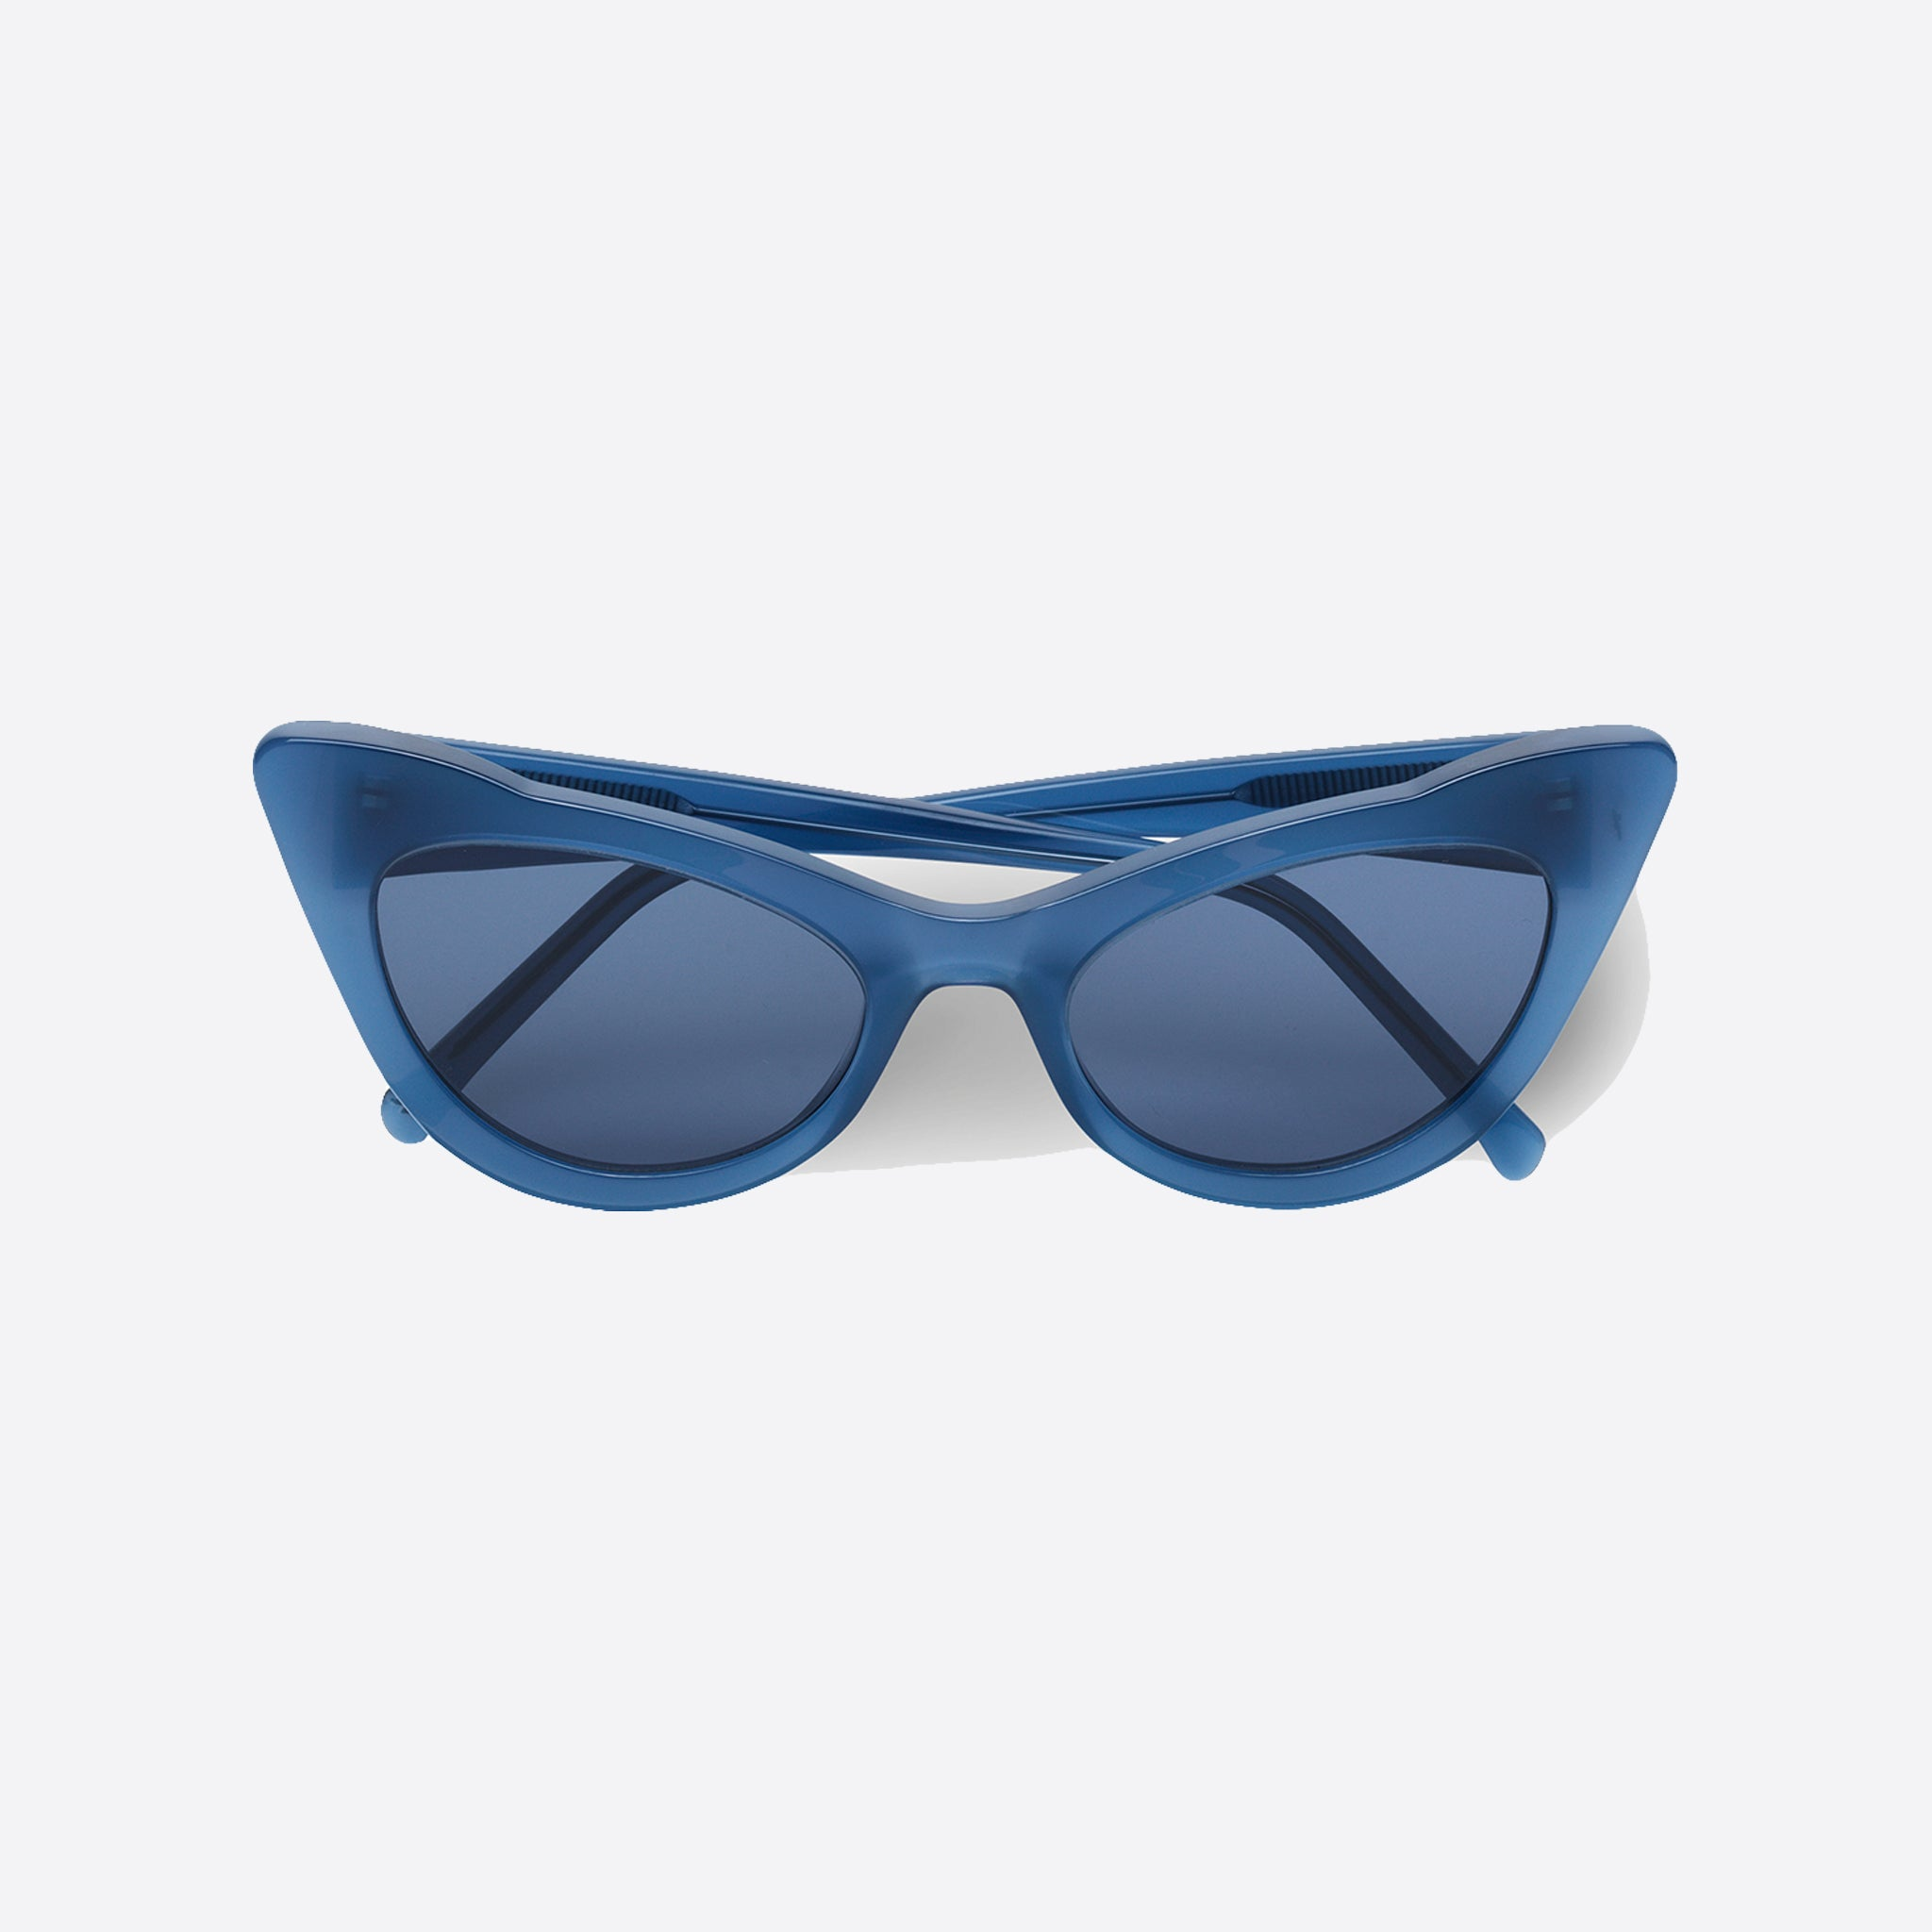 Ganni Lulu Sunglasses in Total Eclipse